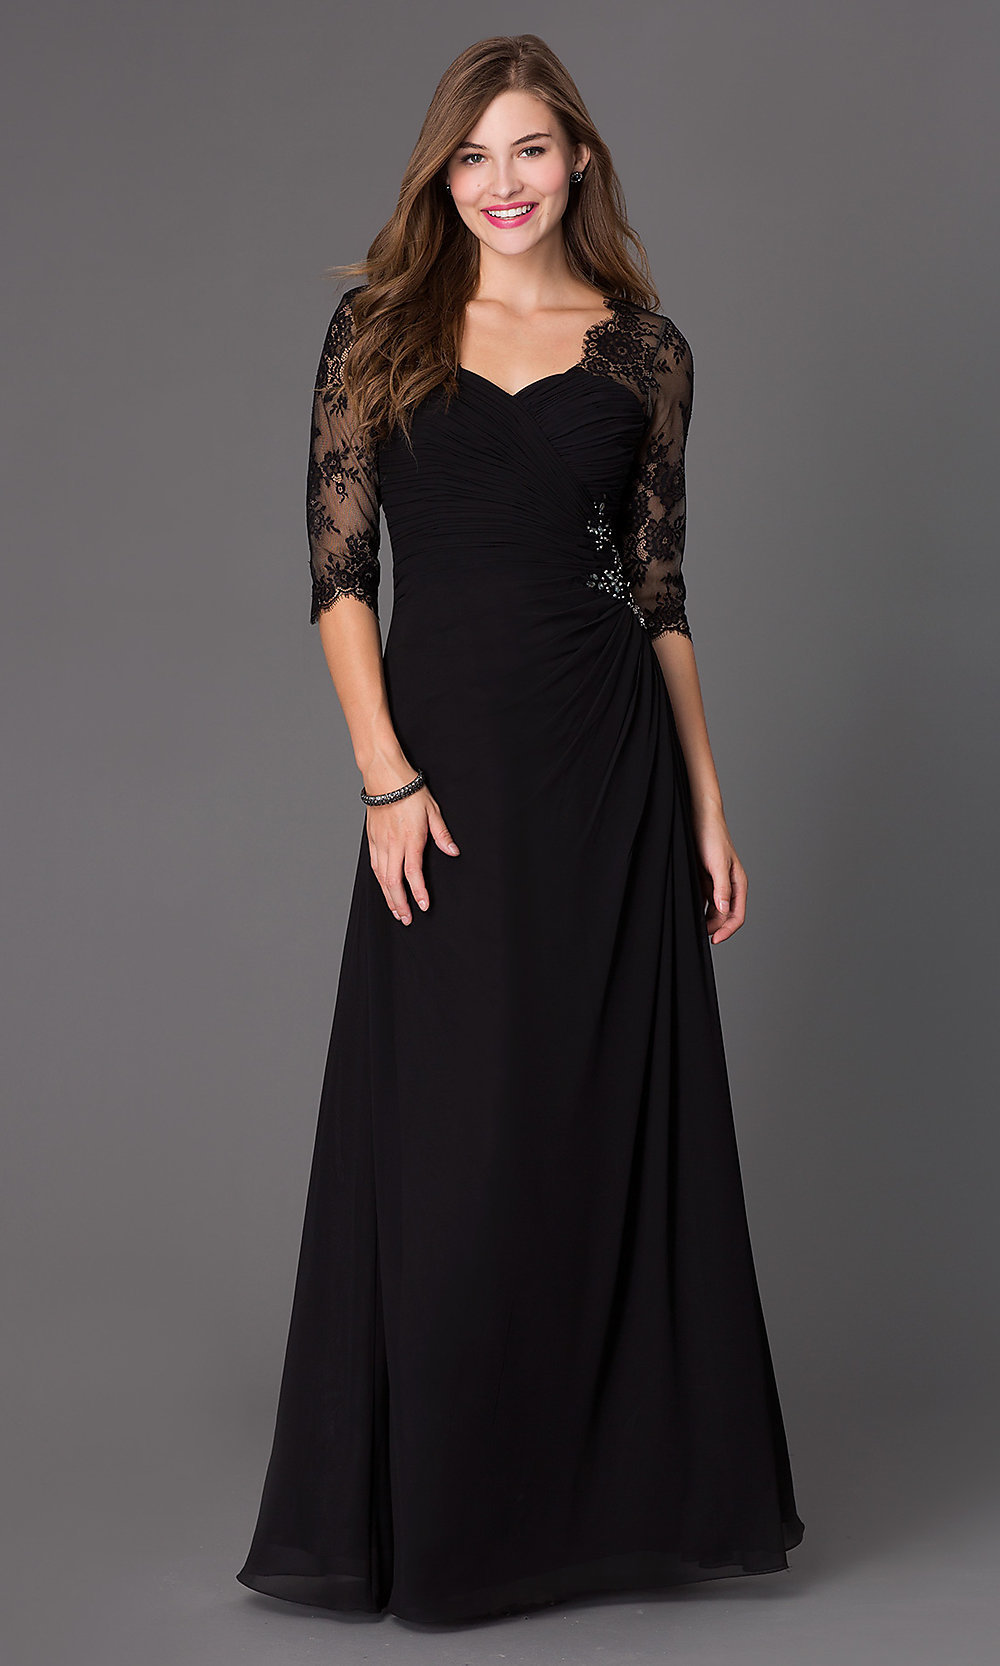 Floor Length Ruched Dress 7210 With Lace 3 4 Length